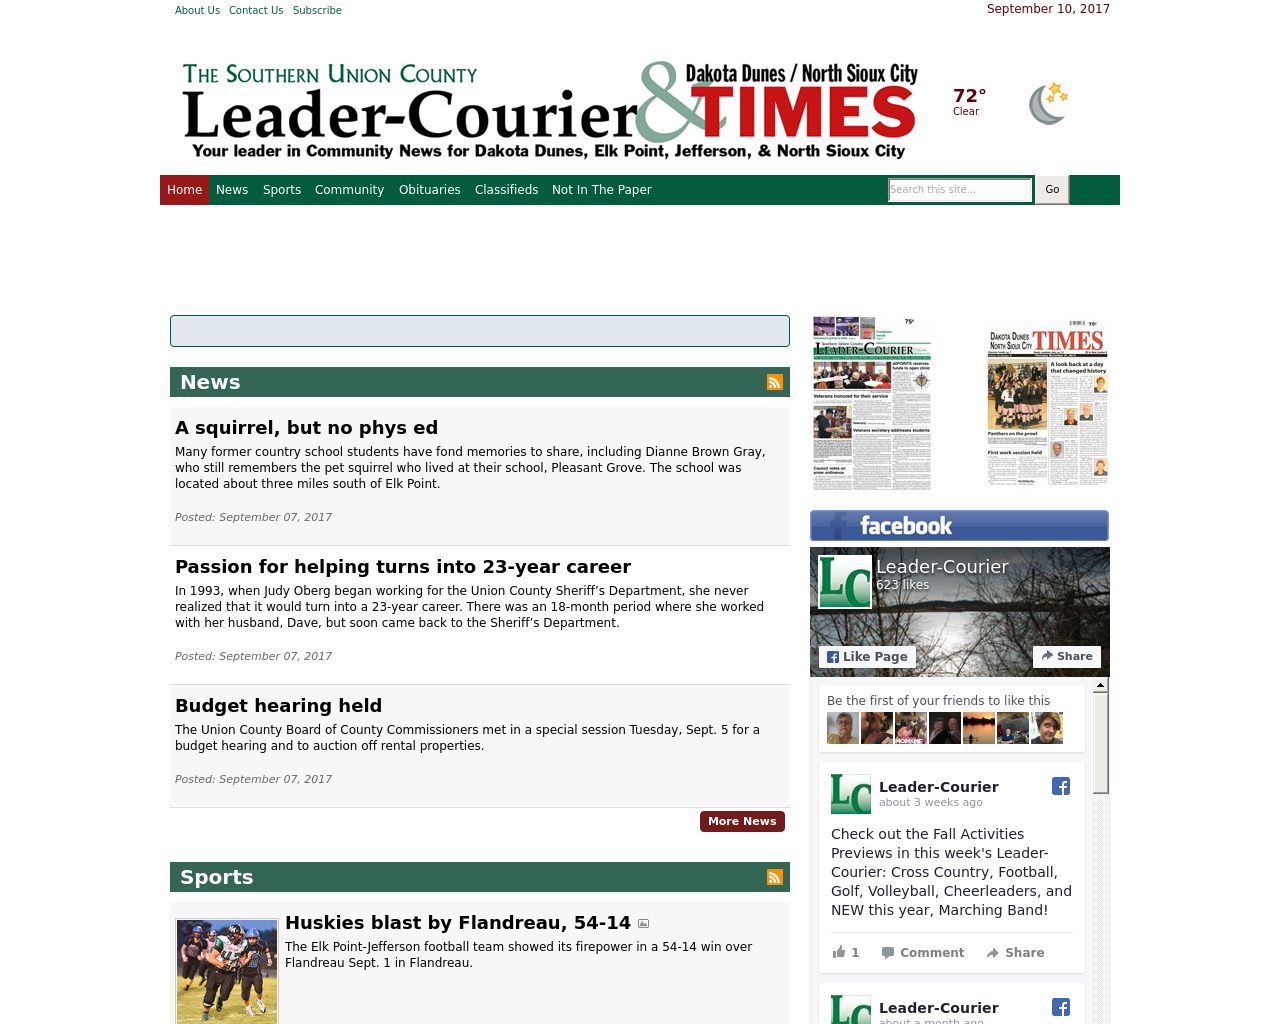 Leader-Courier-&-TIMES-Advertising-Reviews-Pricing